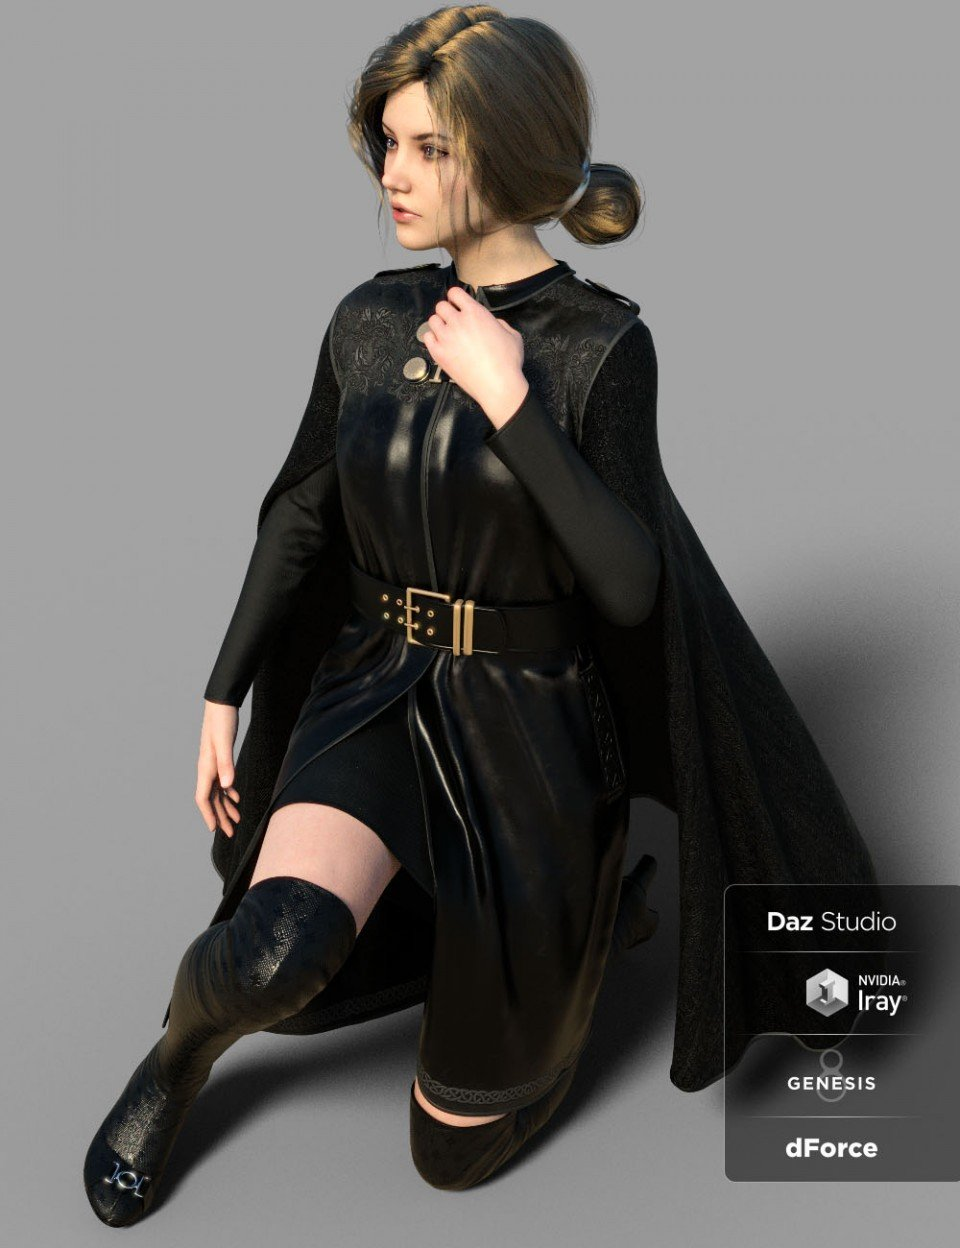 dForce MRB Outfit for Genesis 8 Female